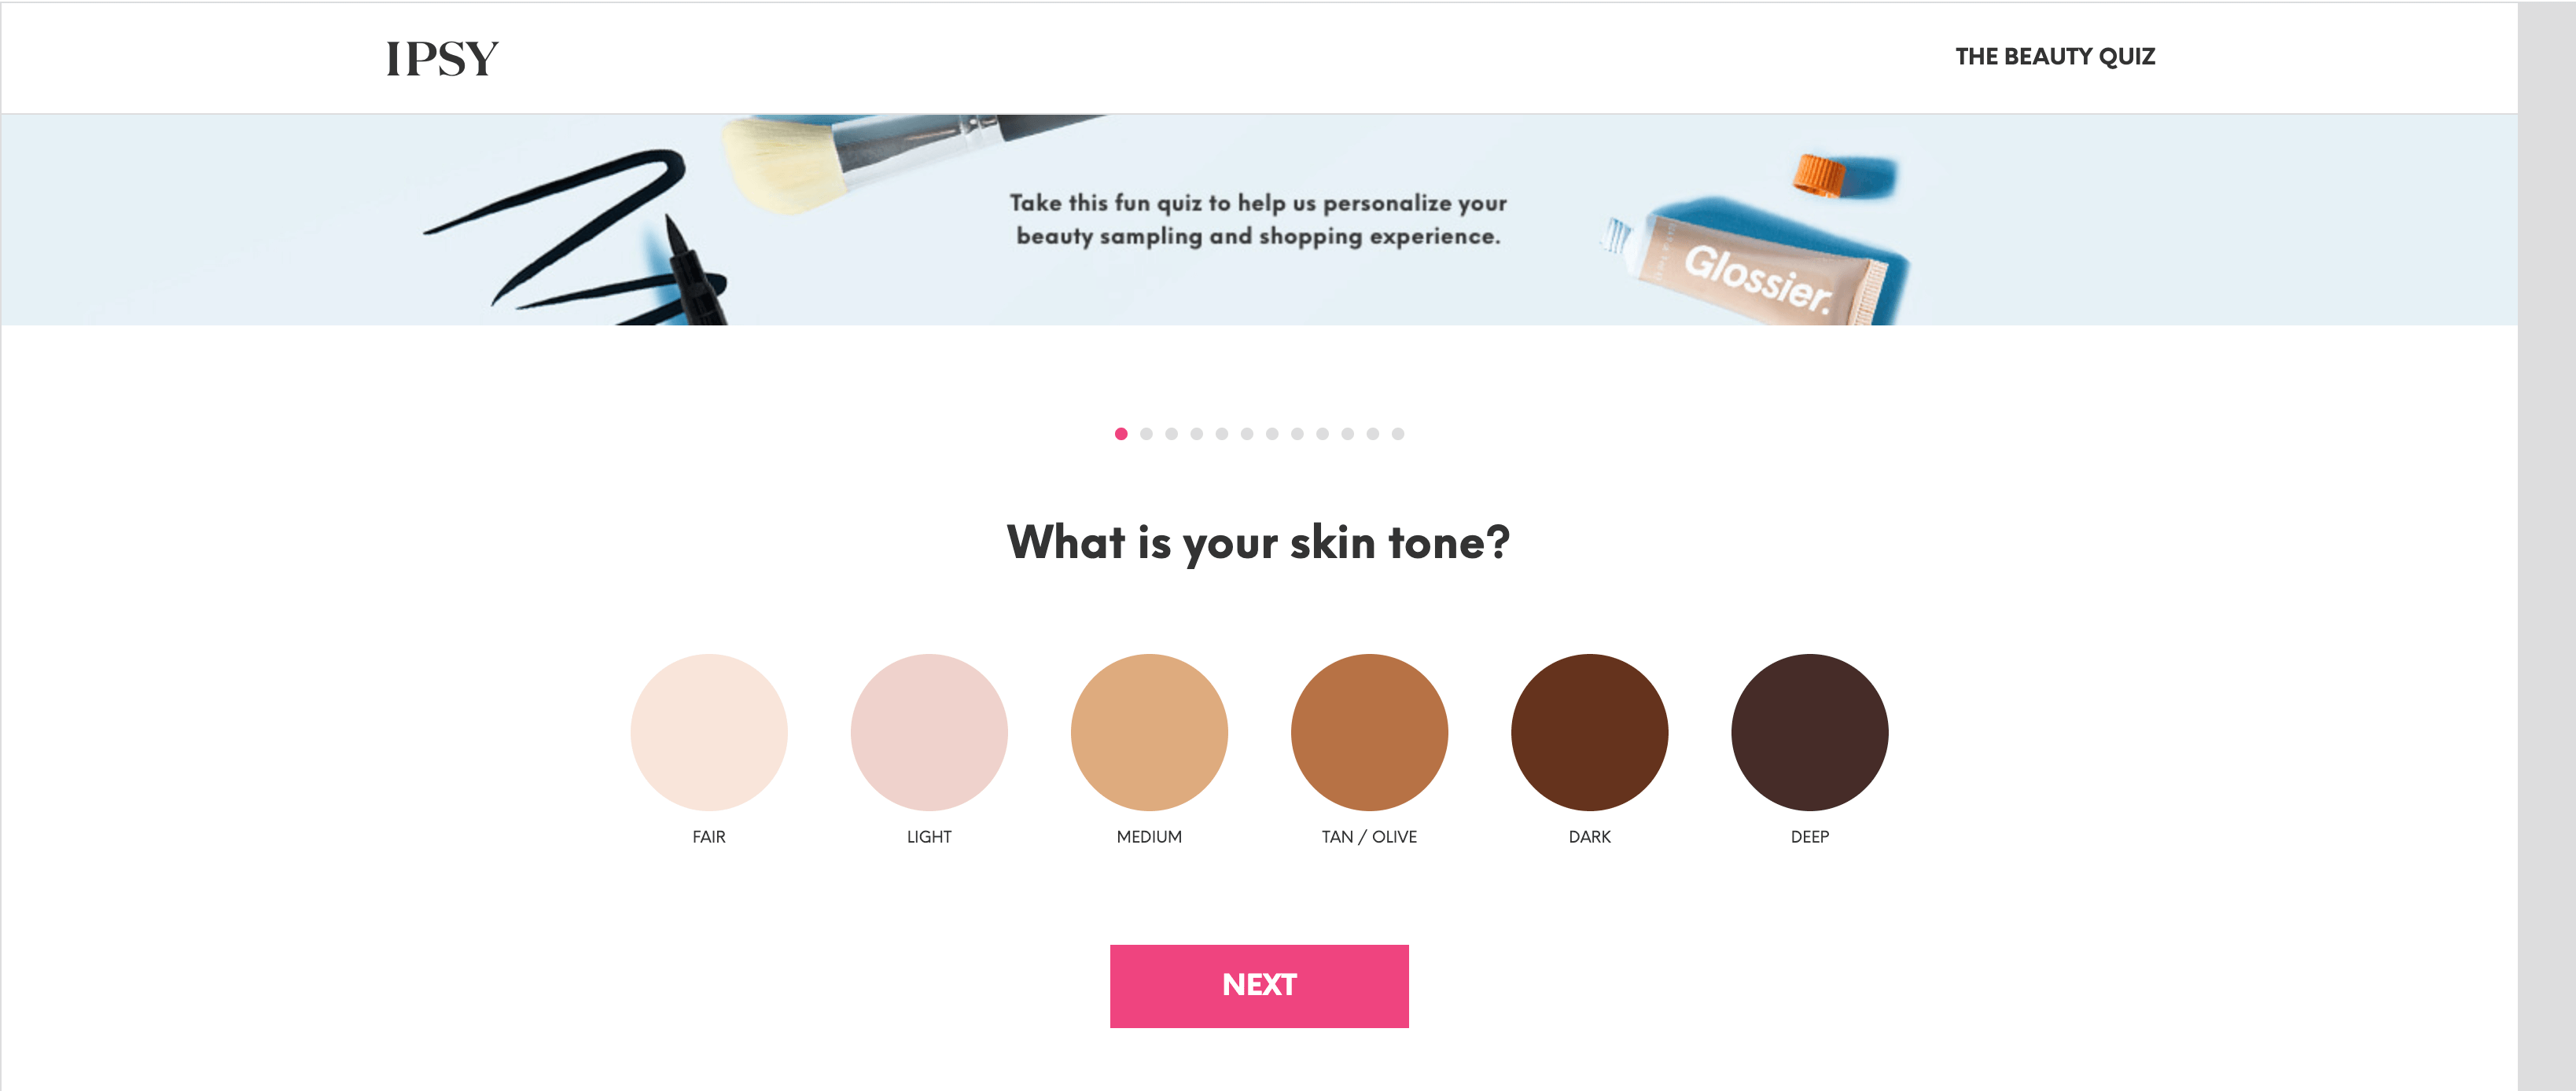 Ipsy personalizes subscriptions based on a user's demographic profile and needs. Customer lifetime values vary across the different backgrounds of each customer. Analyzing based on each profile is a process that will take time, but will provide insights about where to best reach each customer to best meet their needs.